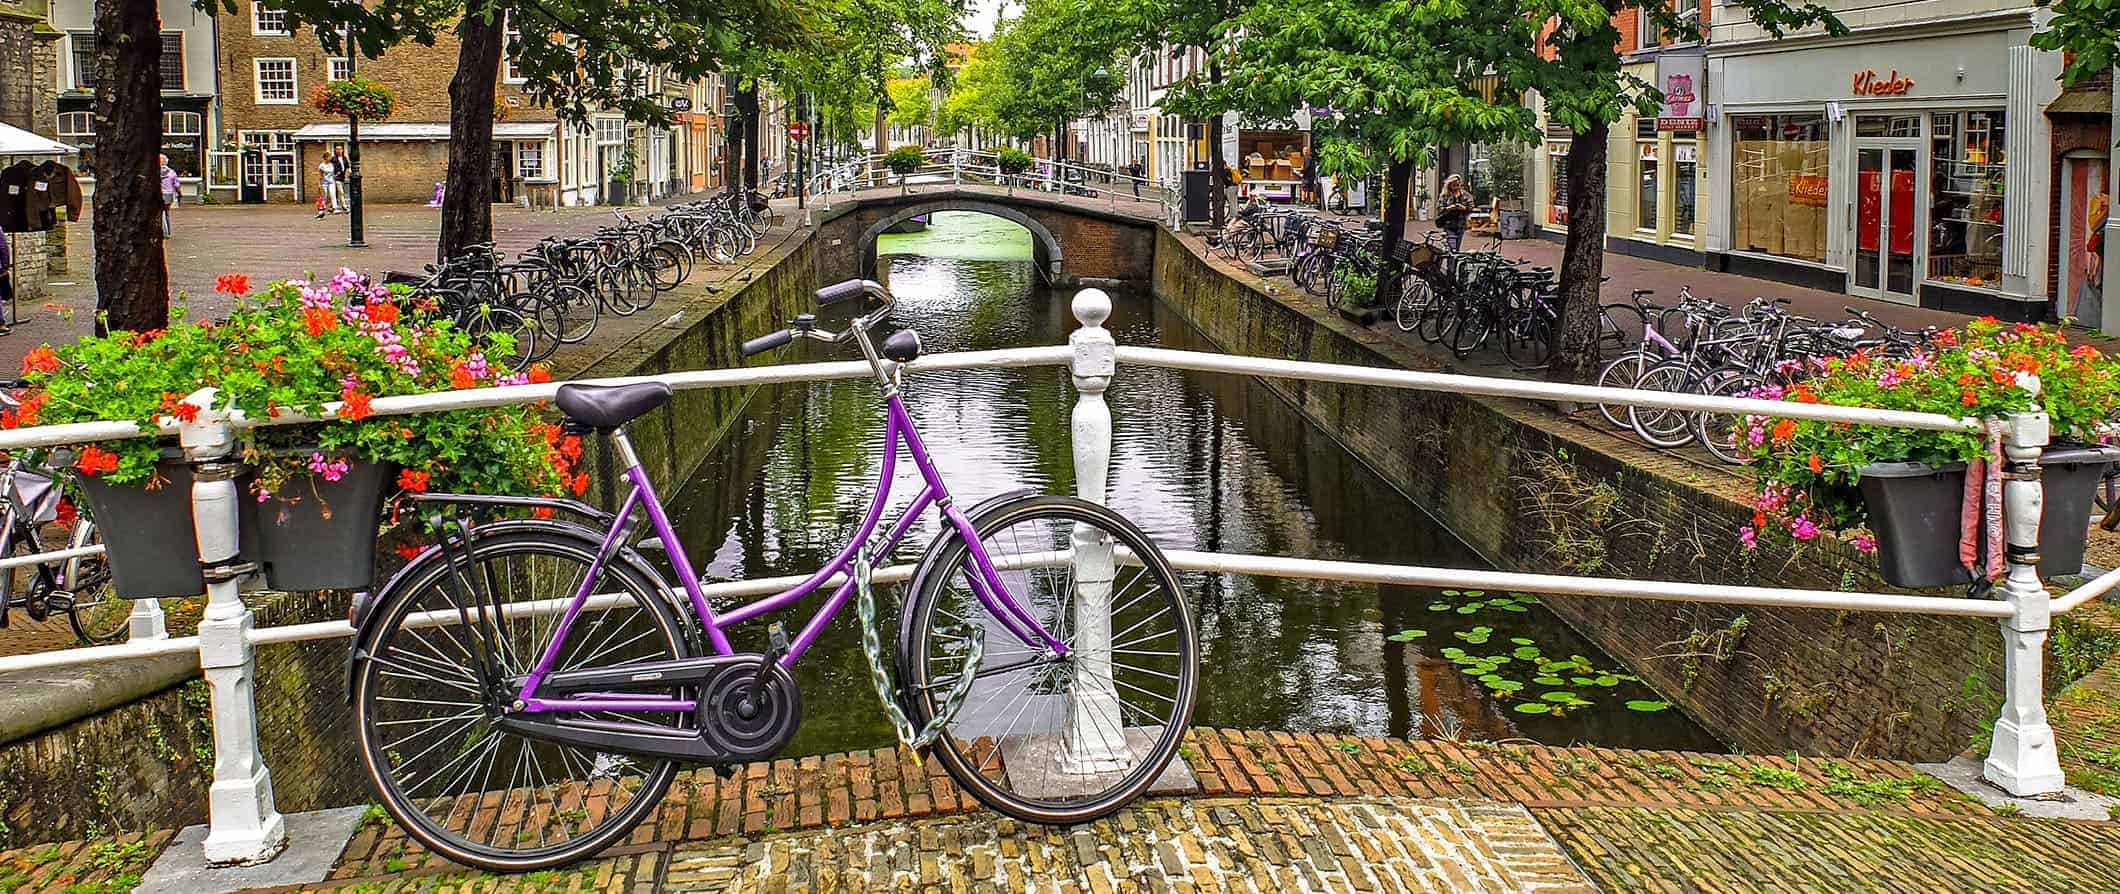 a view of a canal in the netherlands with a bike leaning against a bridge